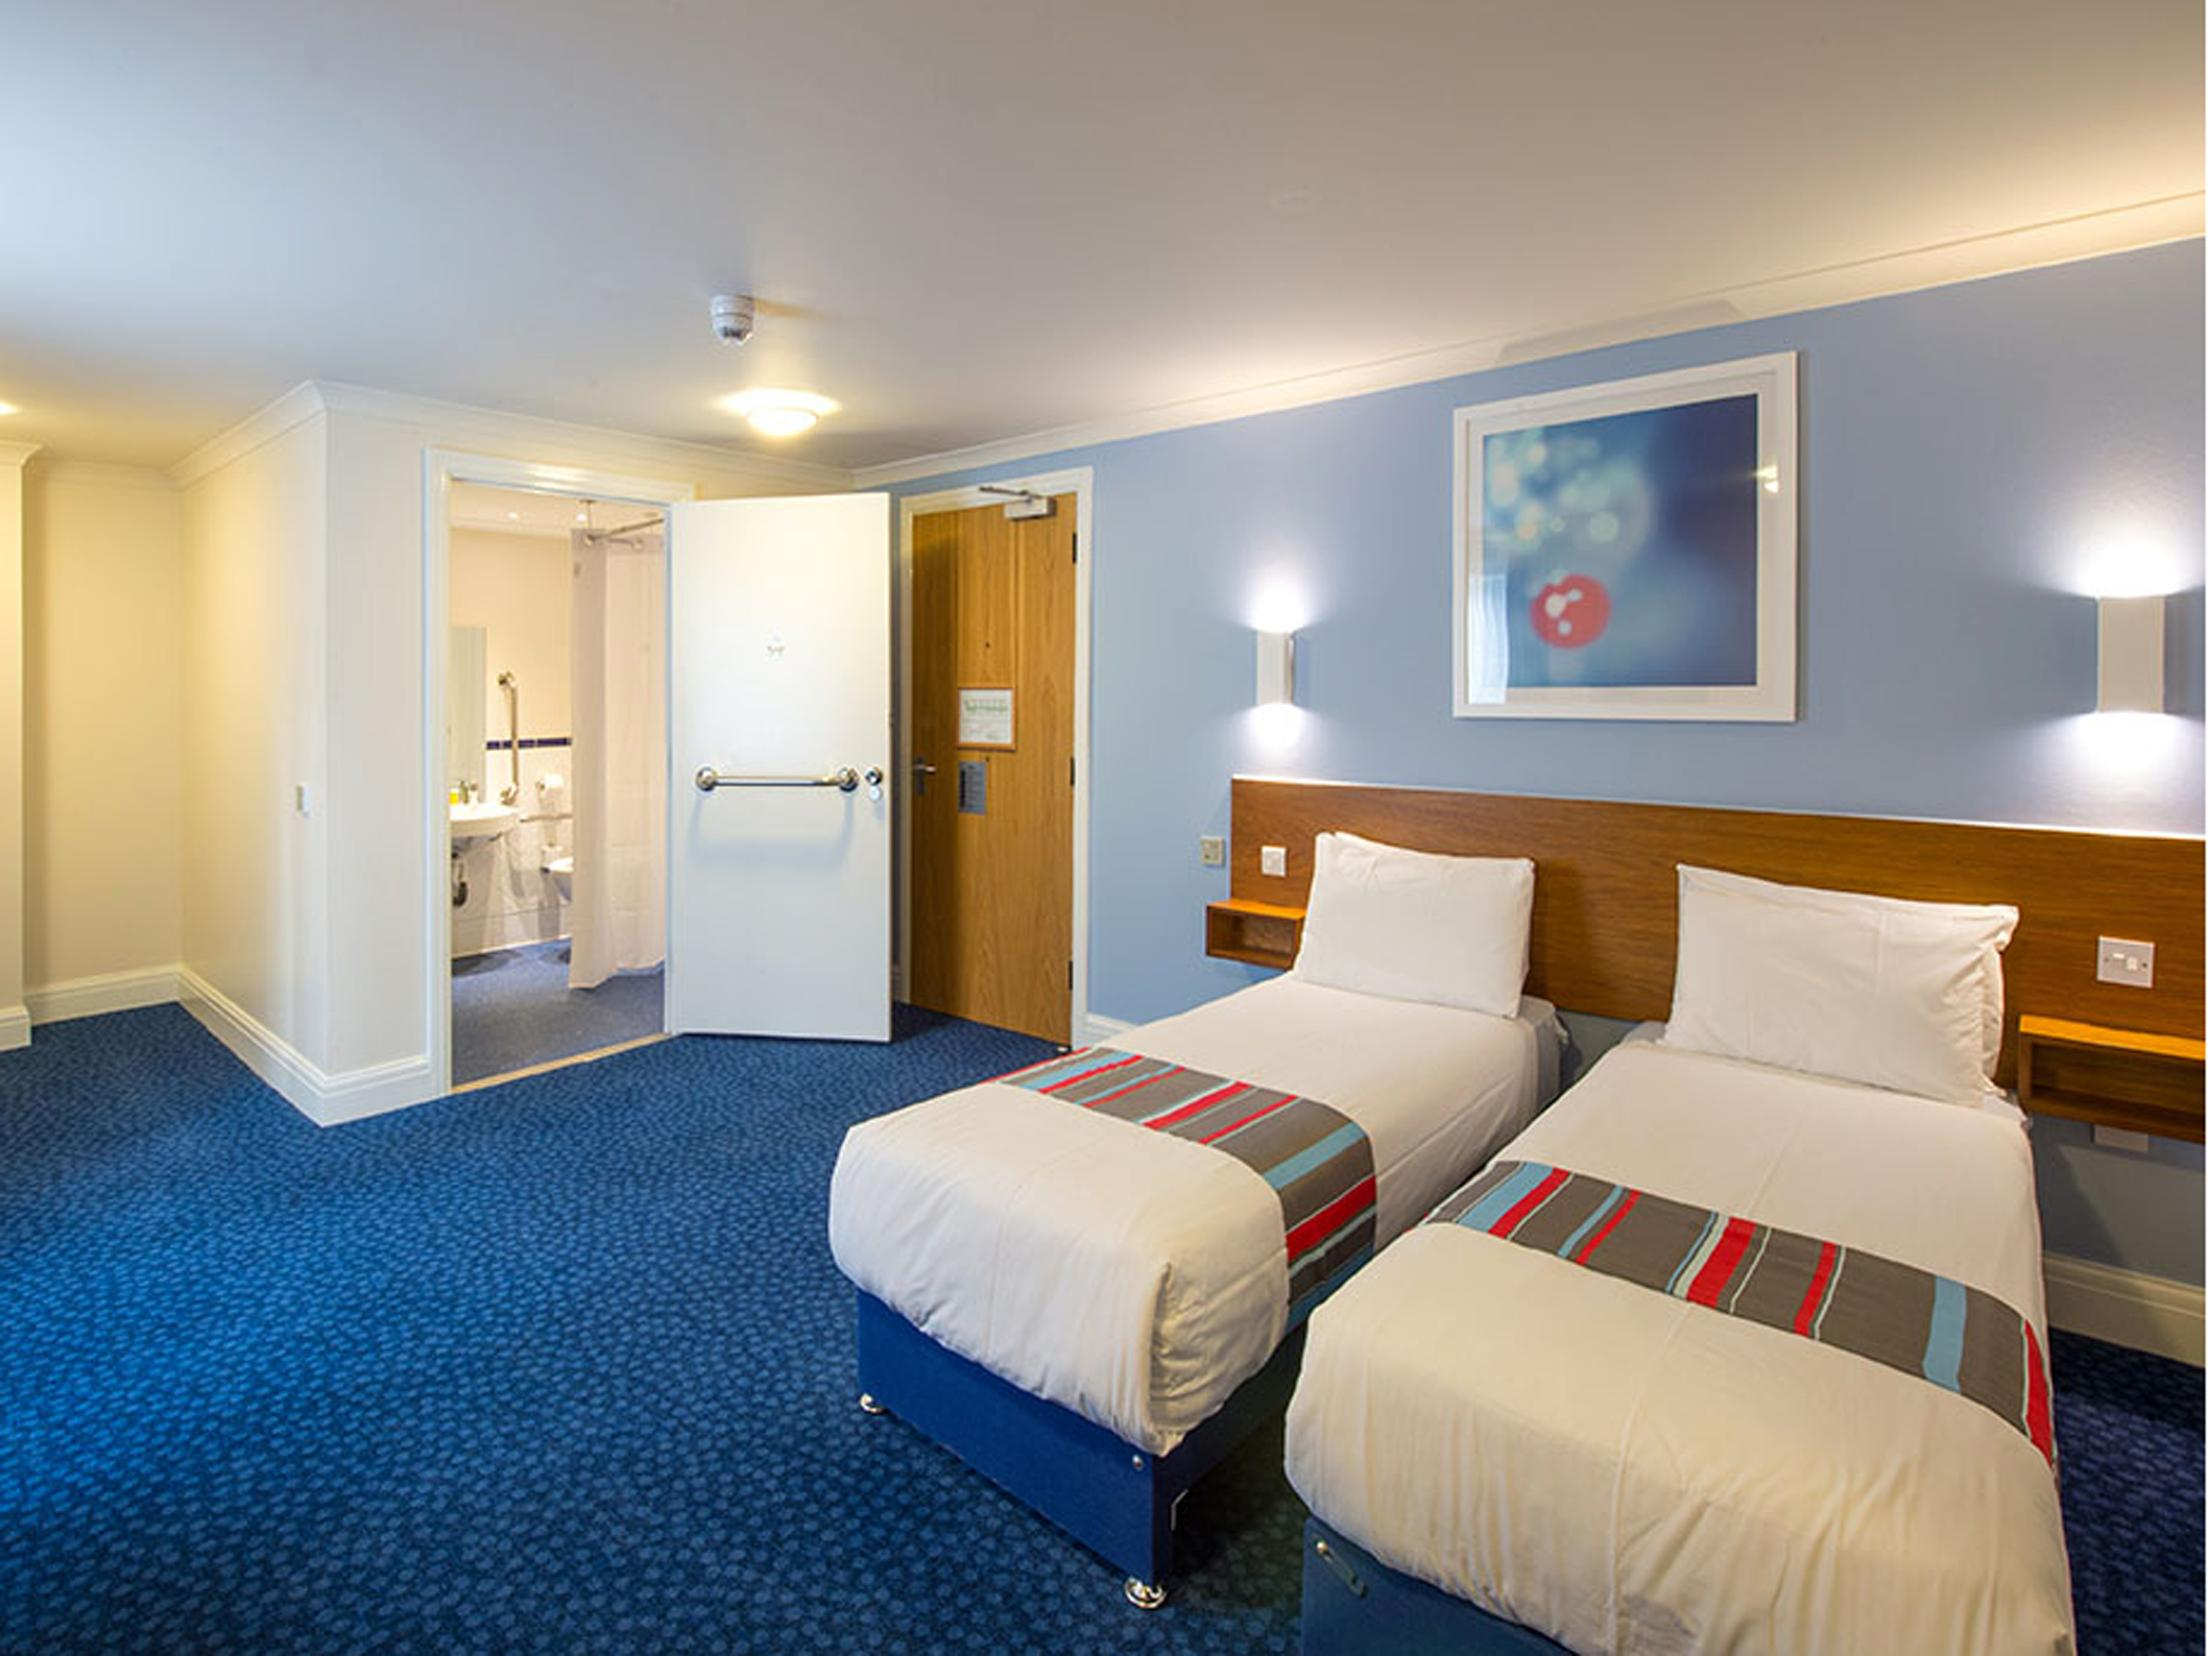 Hotel Bedroom Sizes Uk Accessible Accommodations In Uk Wheelchair Accessible